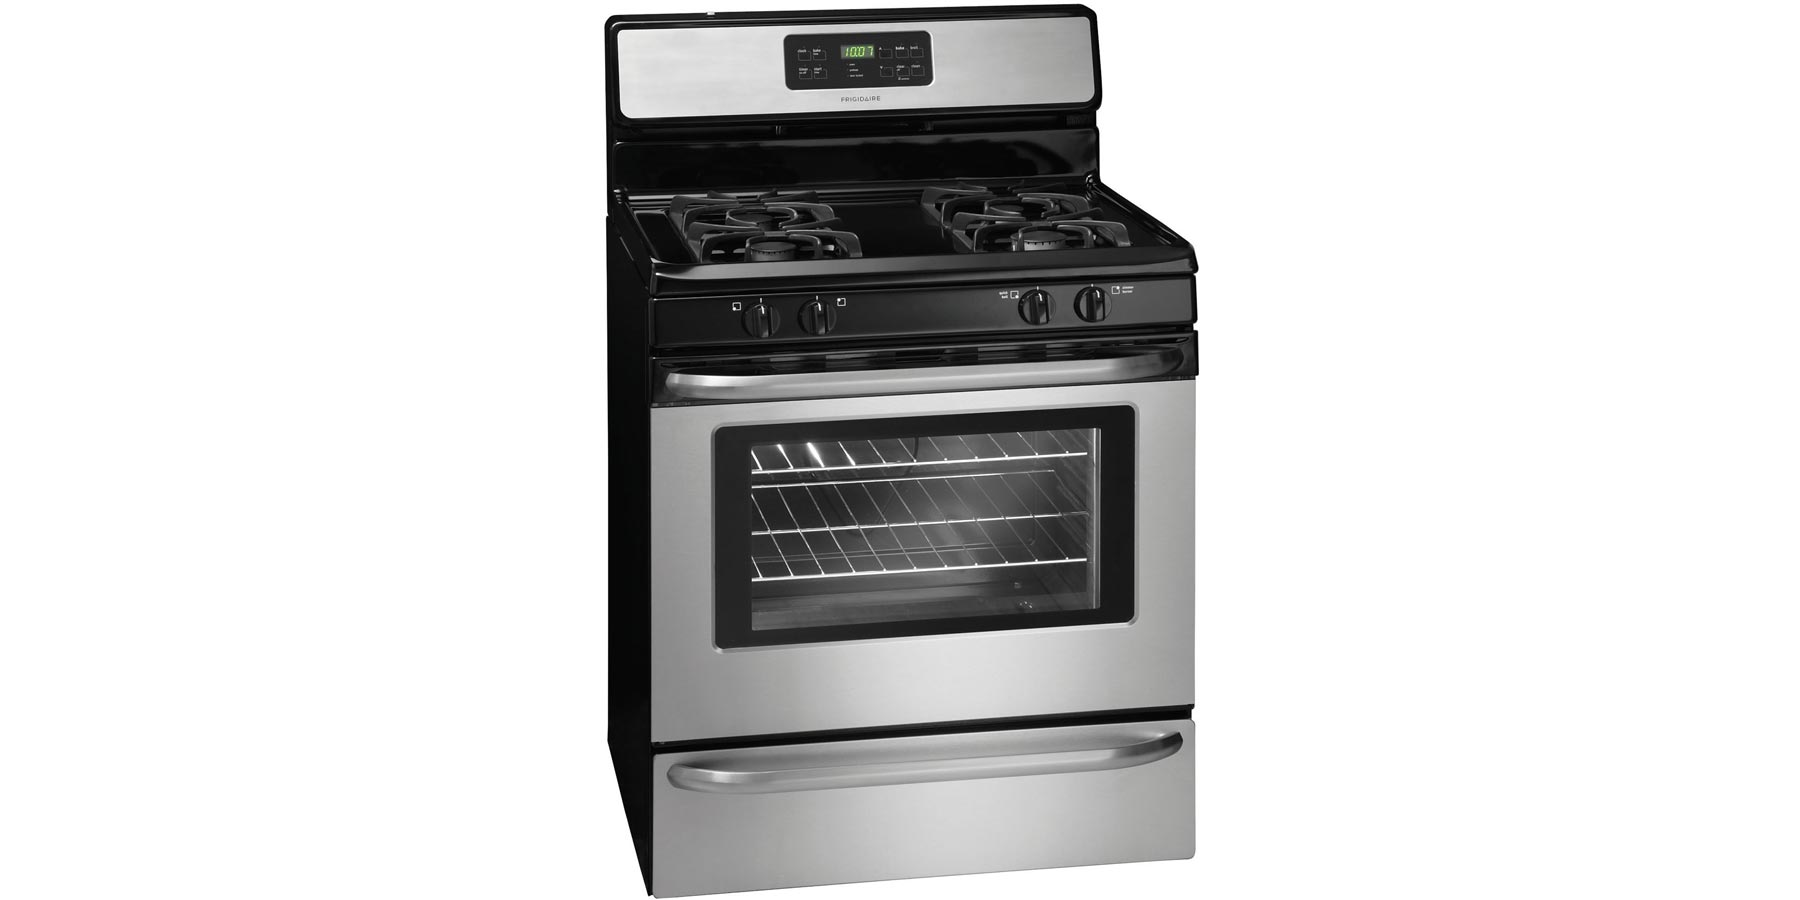 Frigidaire 30 4 Burner Freestanding Self Cleaning Gas